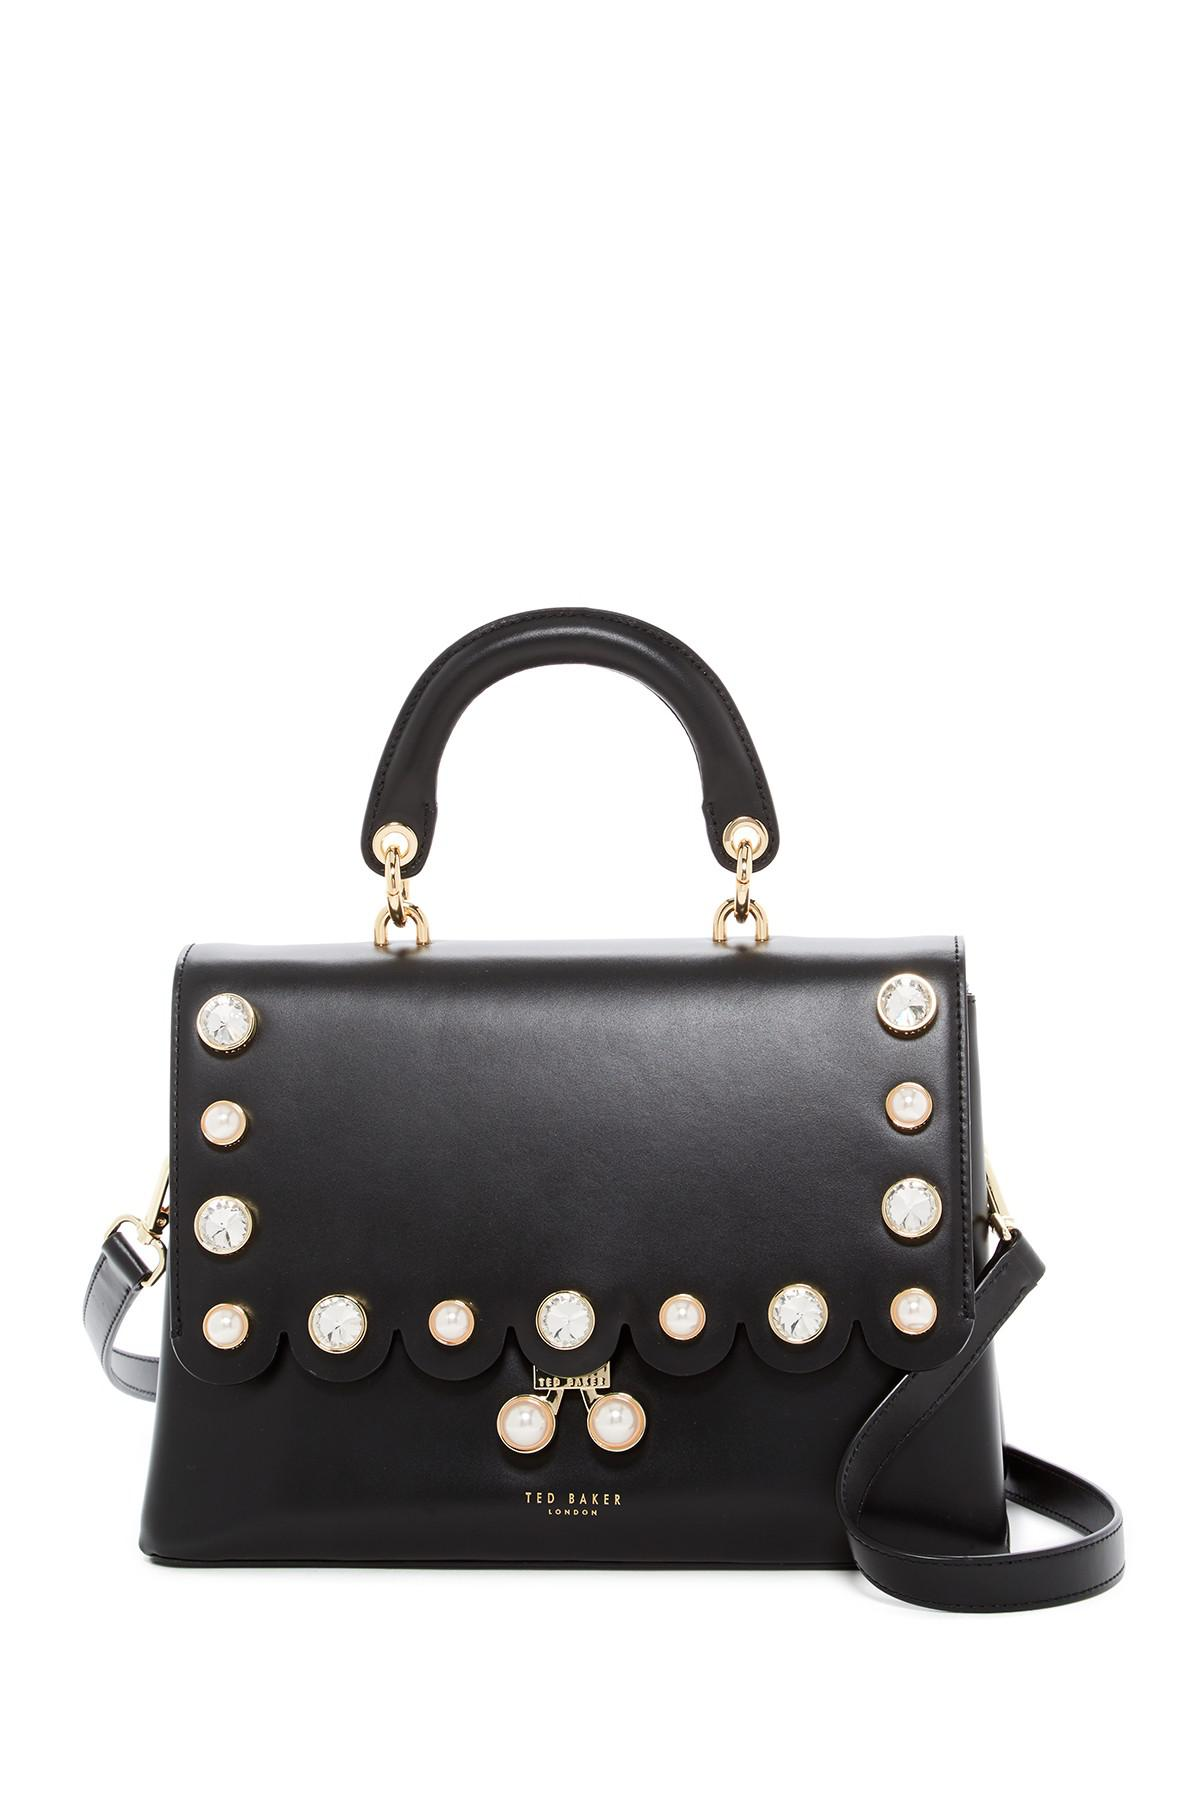 0c8a95e4d Lyst - Ted Baker Sylviaa Scalloped Leather Shoulder Bag in Black